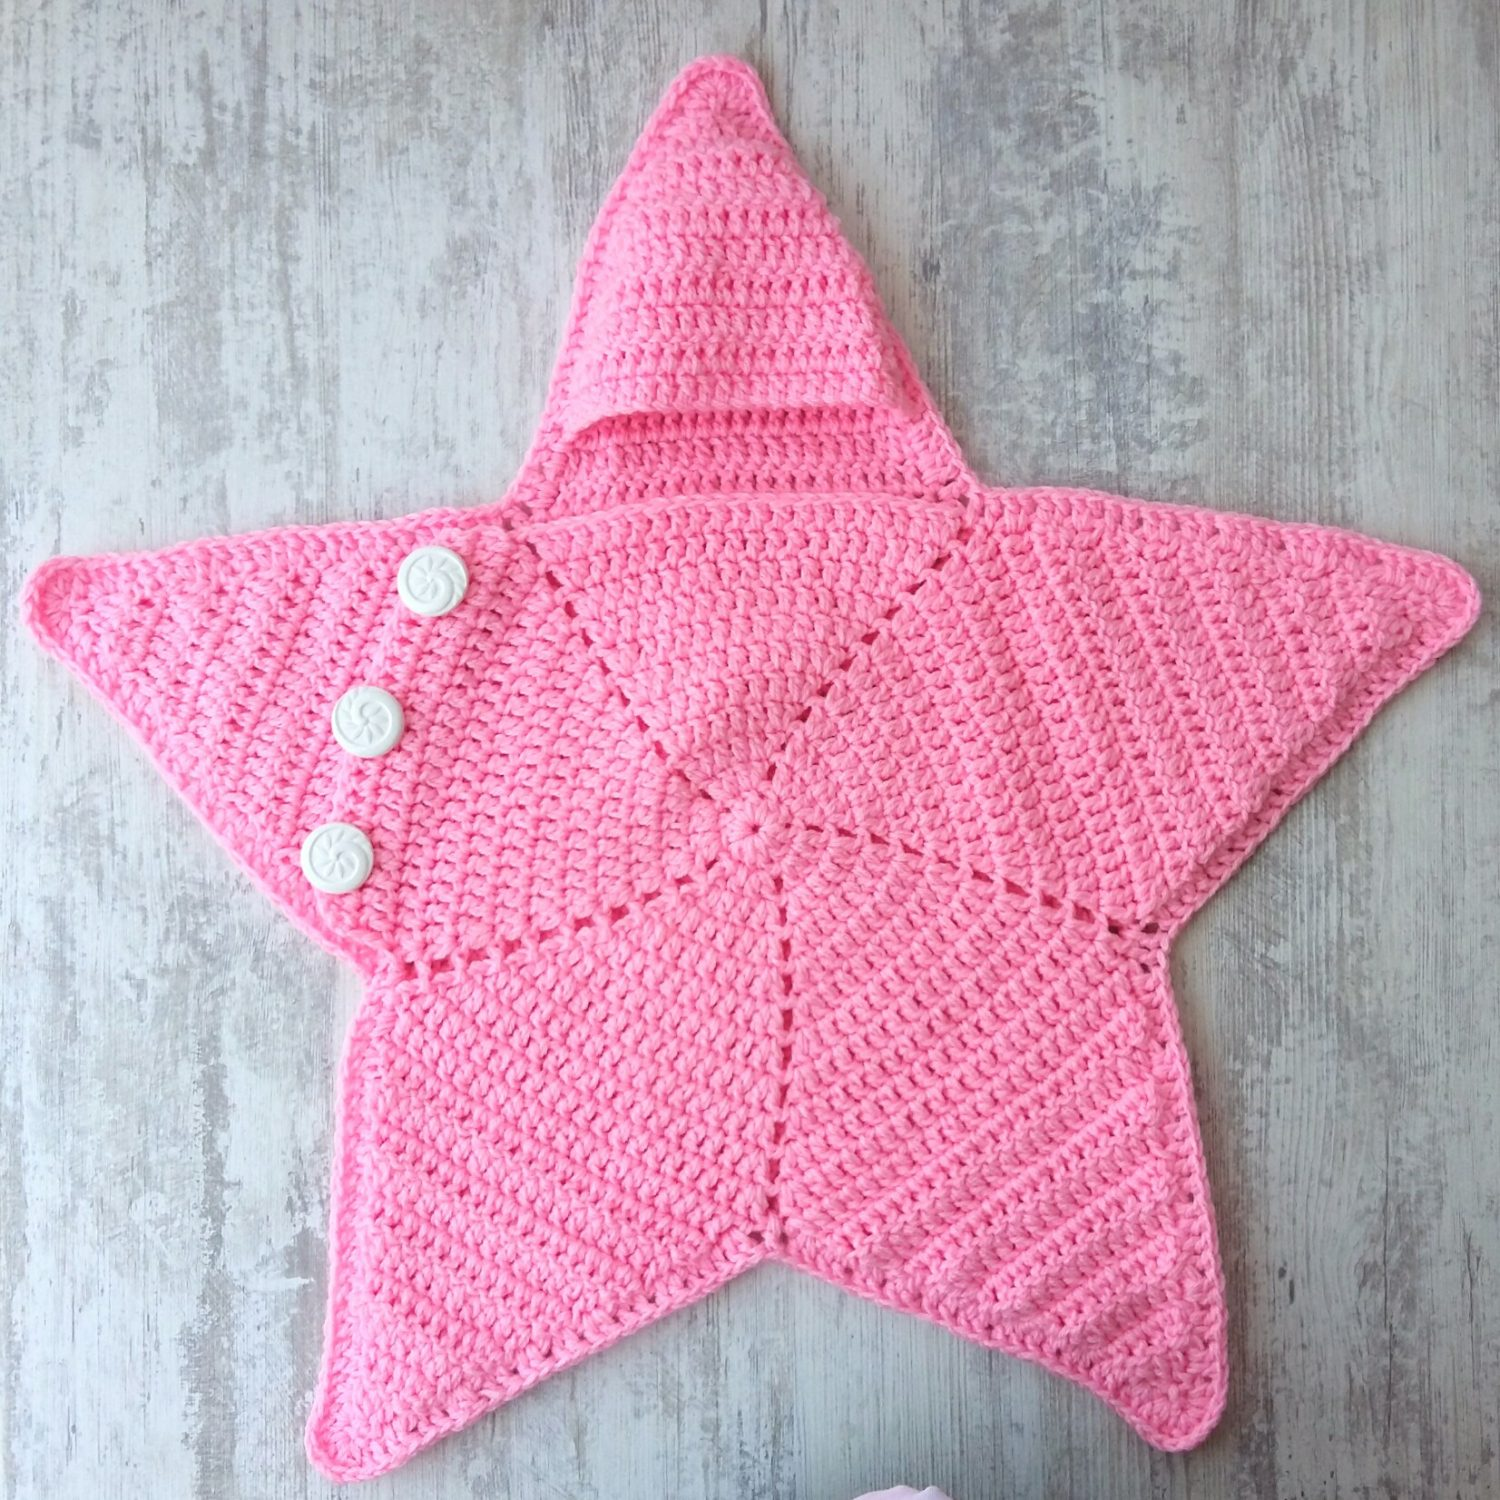 Crochet Baby Star Blanket Wrap